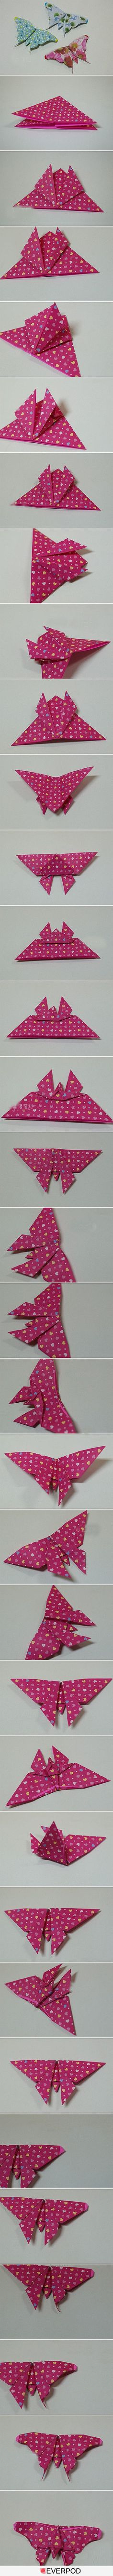 origami mariposas Instead of ribbons and bows on gifts, with coordinating gift wrap?